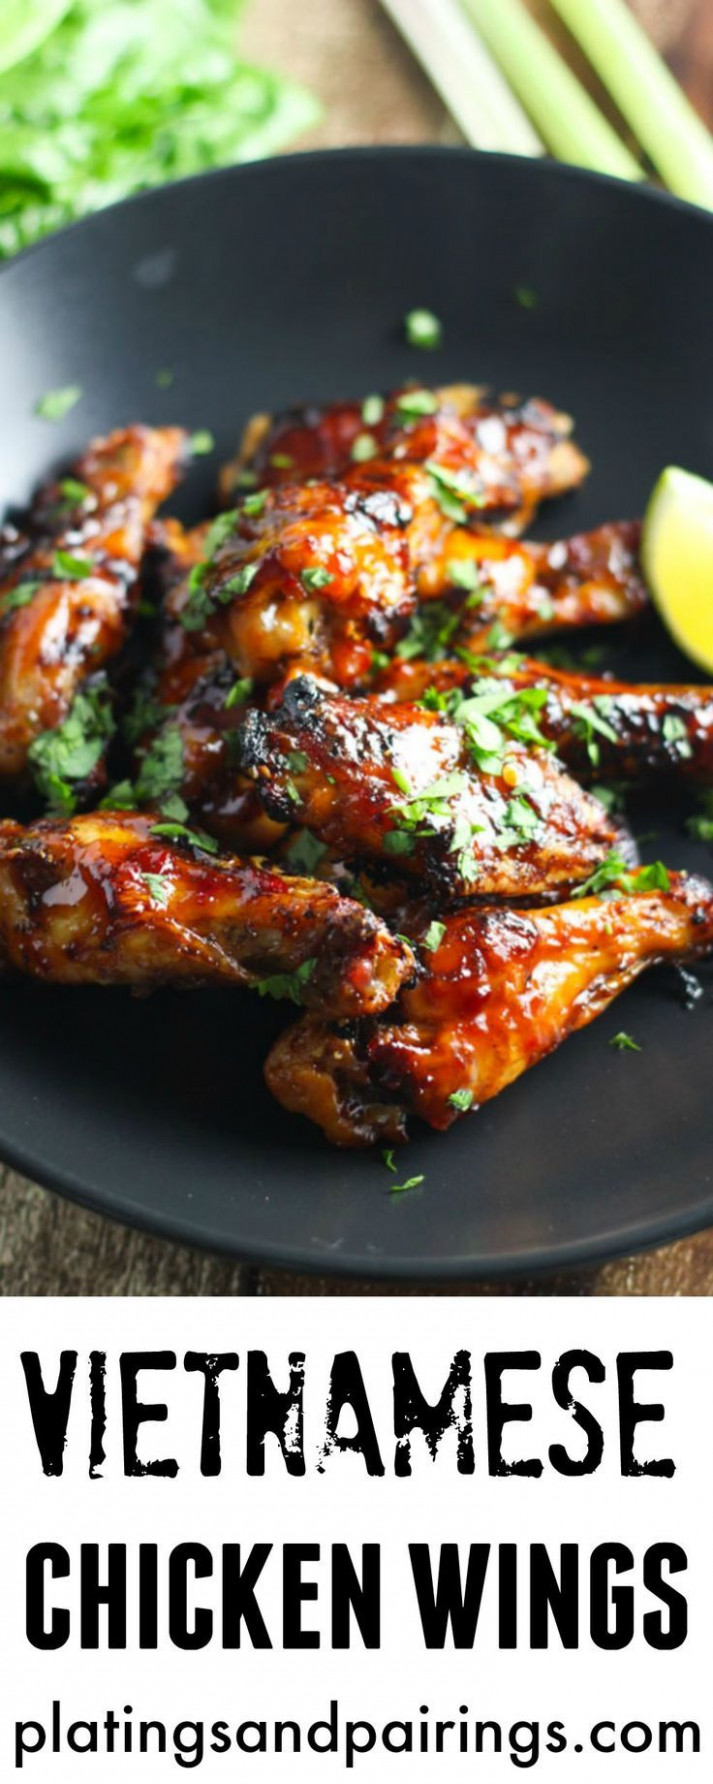 Vietnamese Chicken Wings - Baked, not fried and full of ..